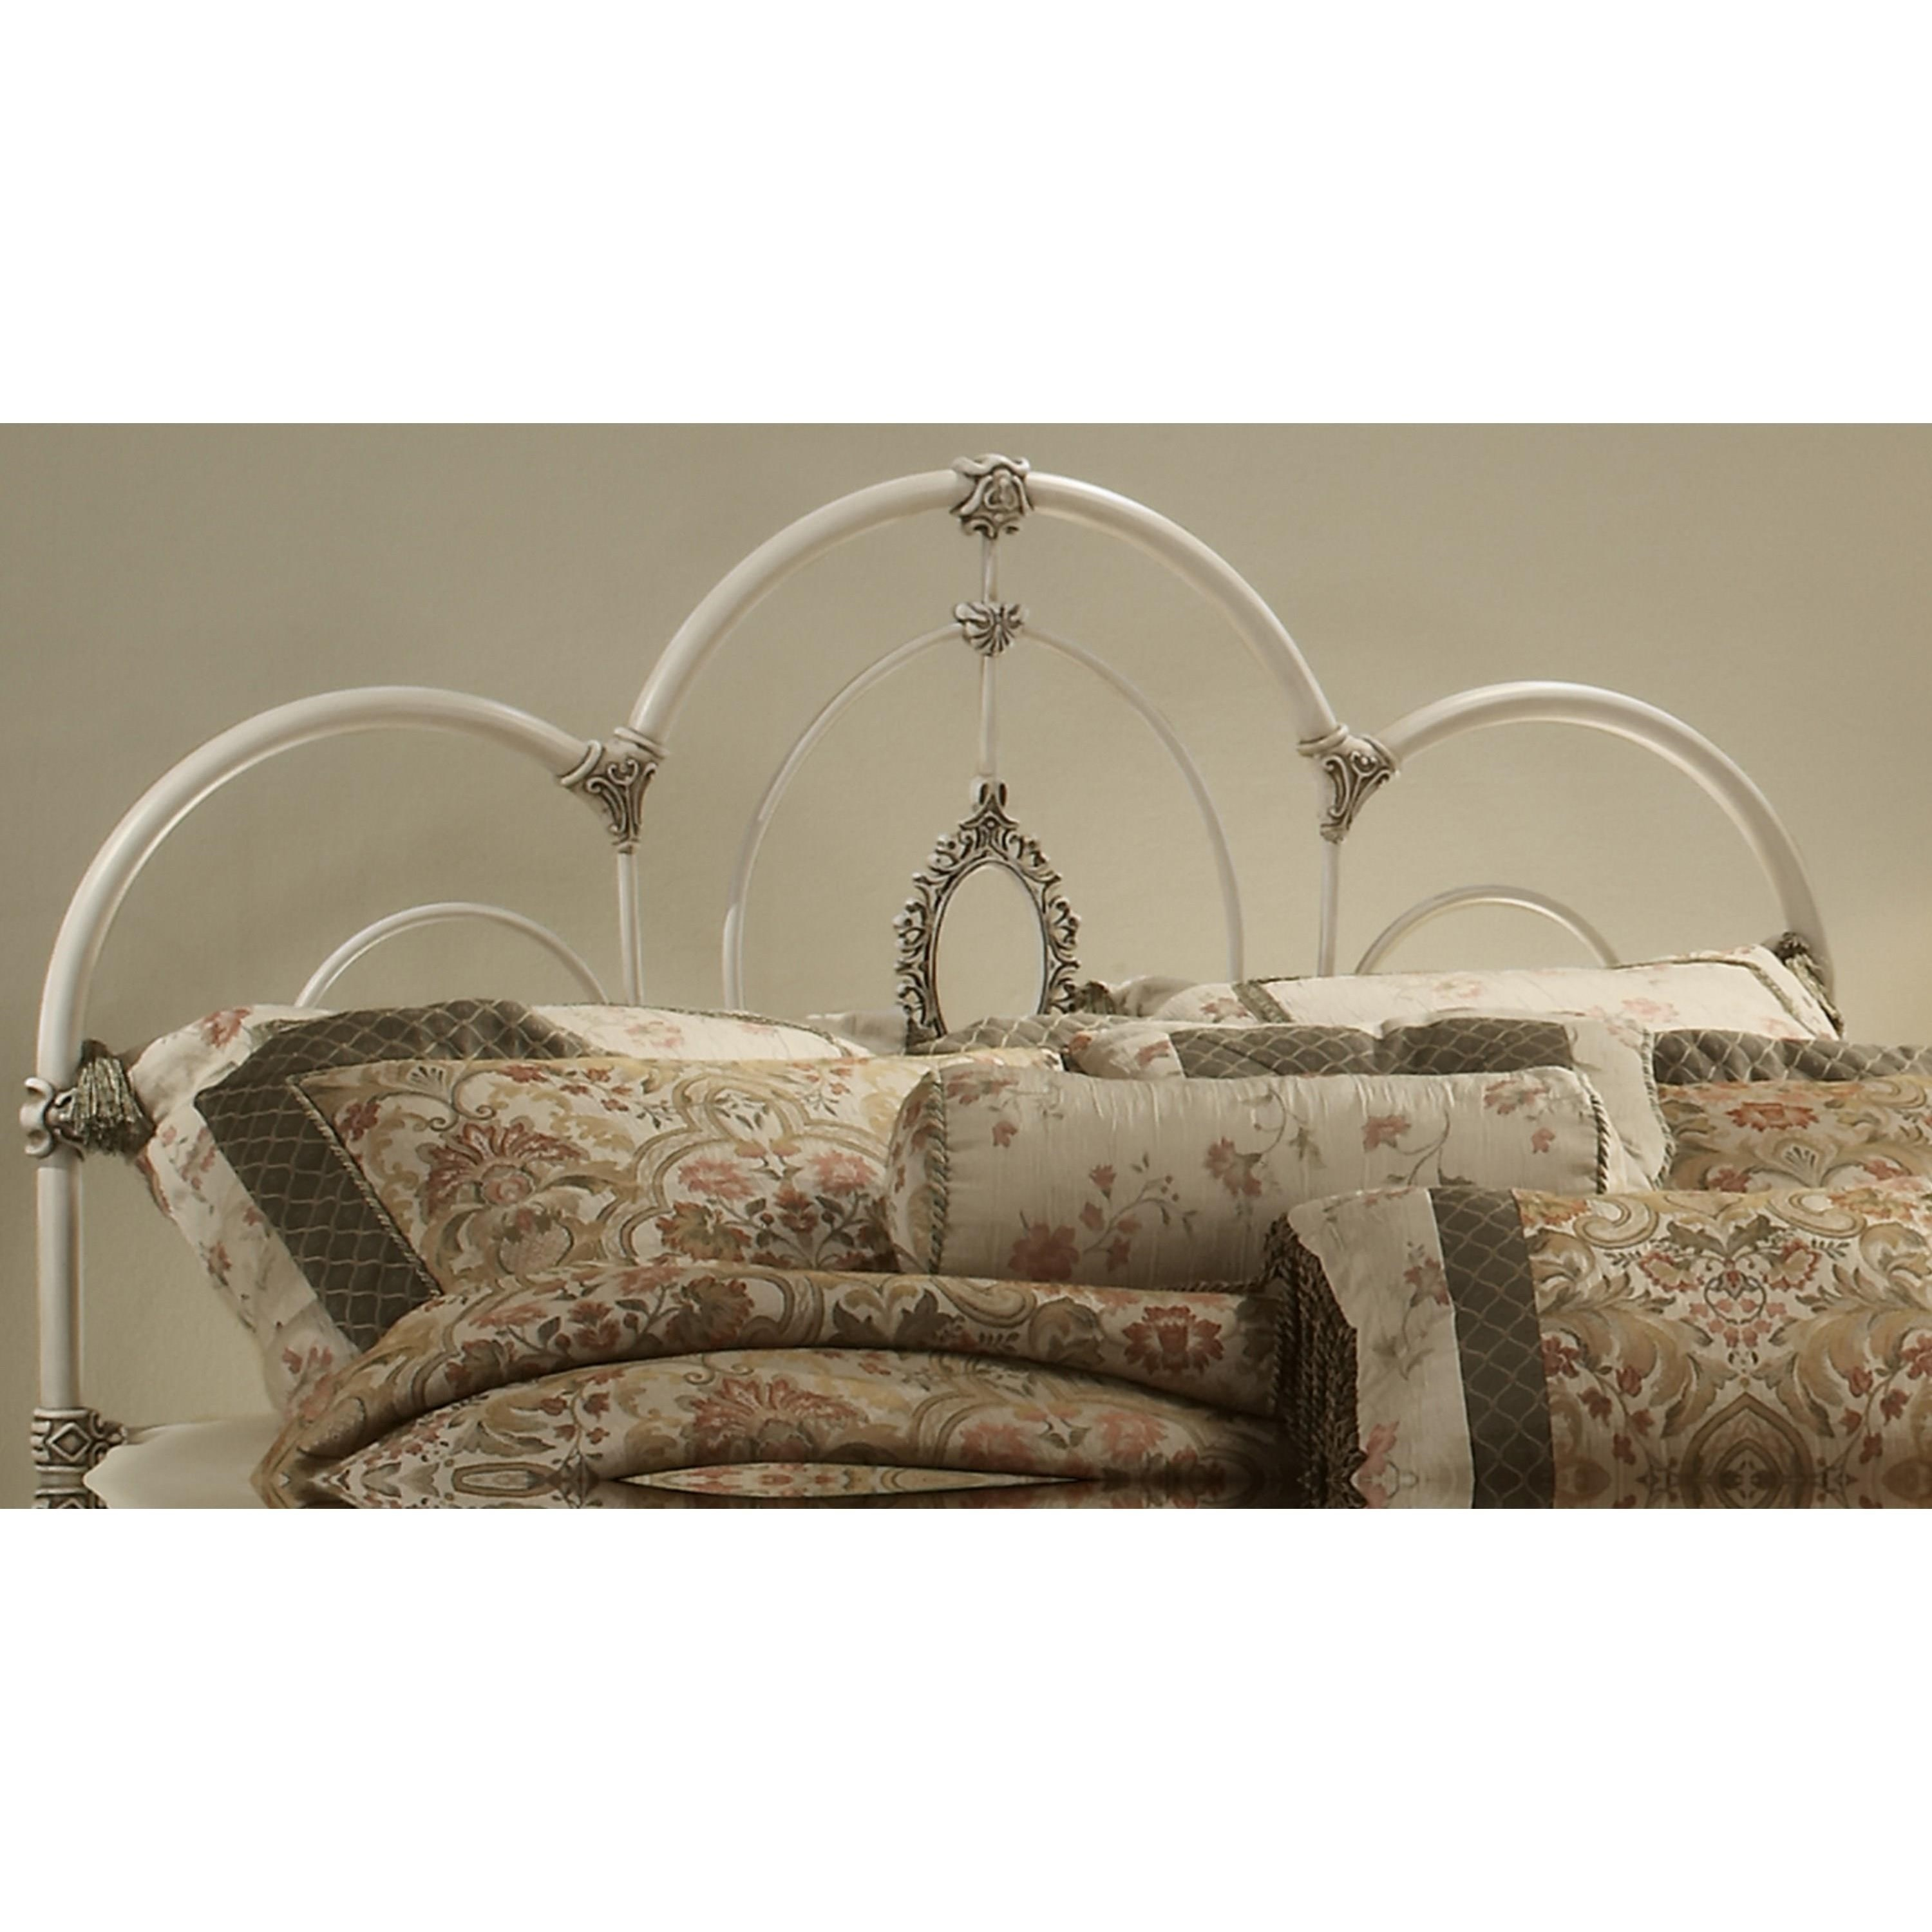 Full/Queen Victoria Headboard by Hillsdale at Crowley Furniture & Mattress